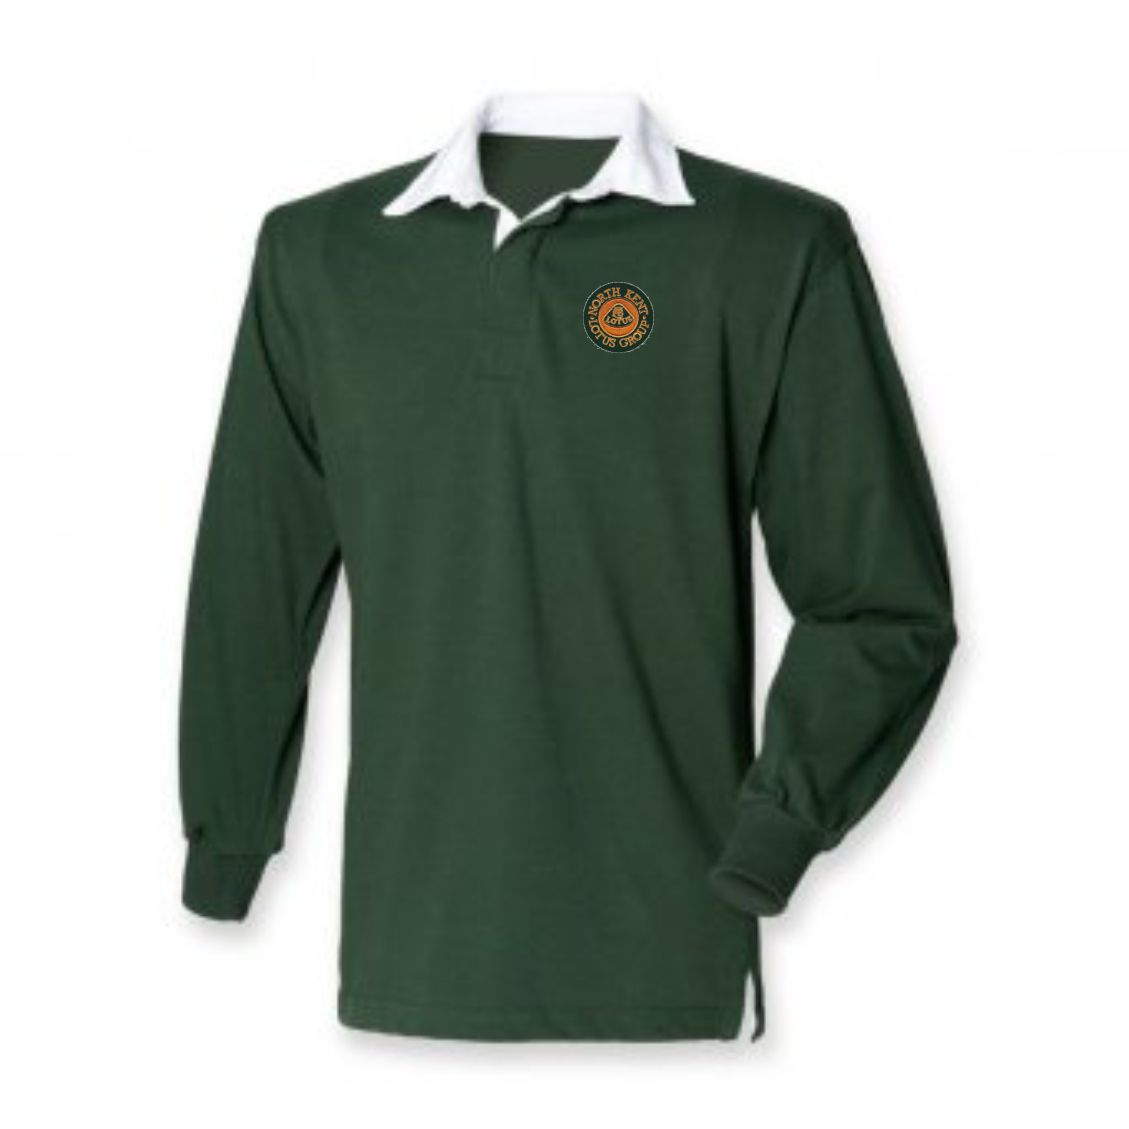 NKL Rugby shirt